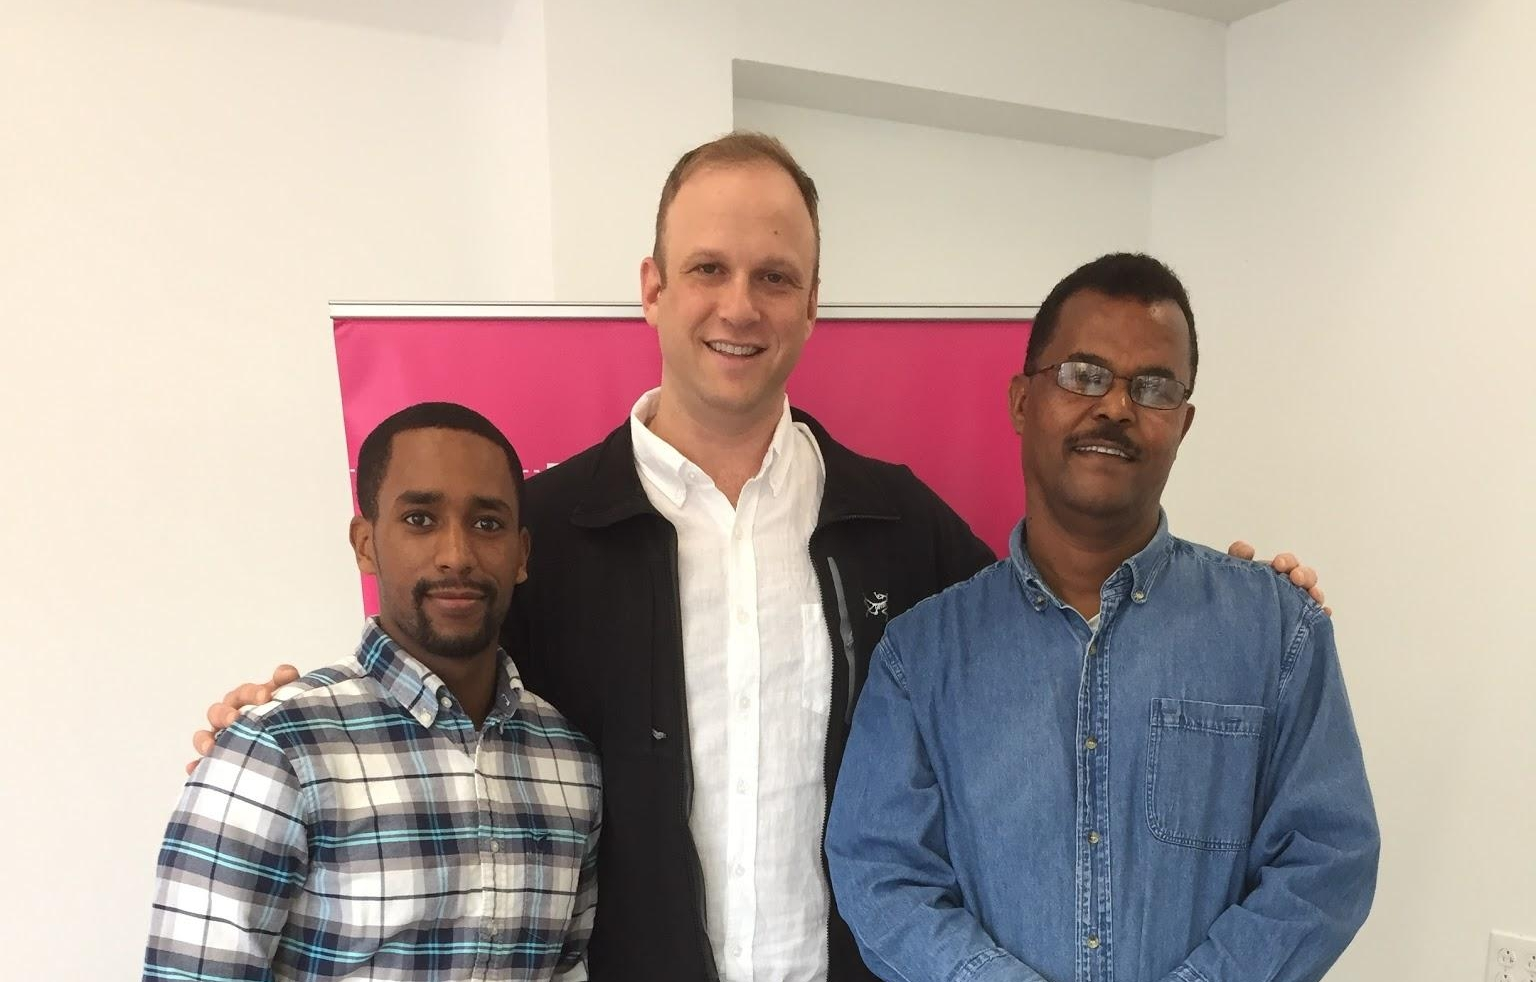 Abraham's son, Harouc, (left), Philadelphia General Manager, Andrew (center), and Abraham (right), contest winner, at the Lyft Philly office.